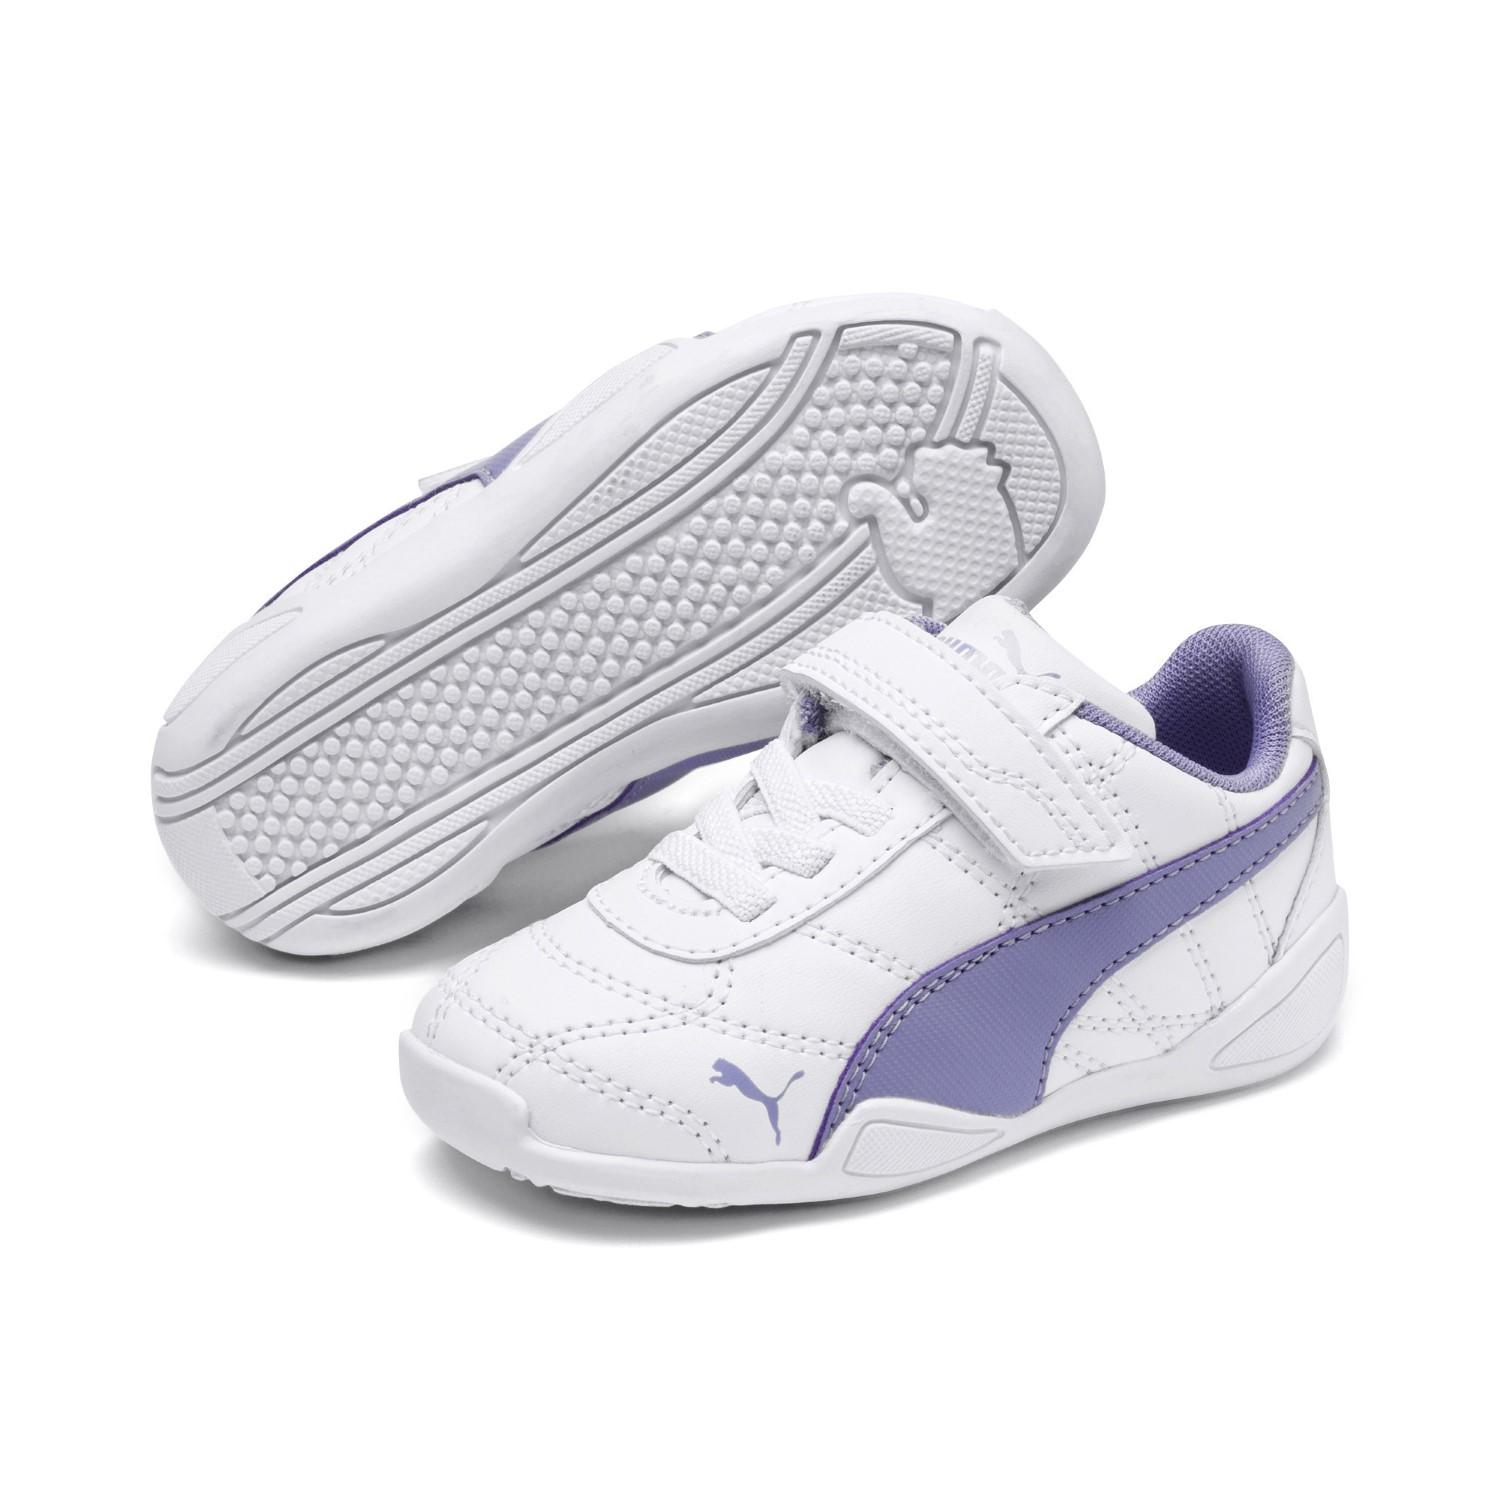 Lyst - PUMA Tune Cat 3 Ac Shoes Inf Unisex Baby in White 380c62a21